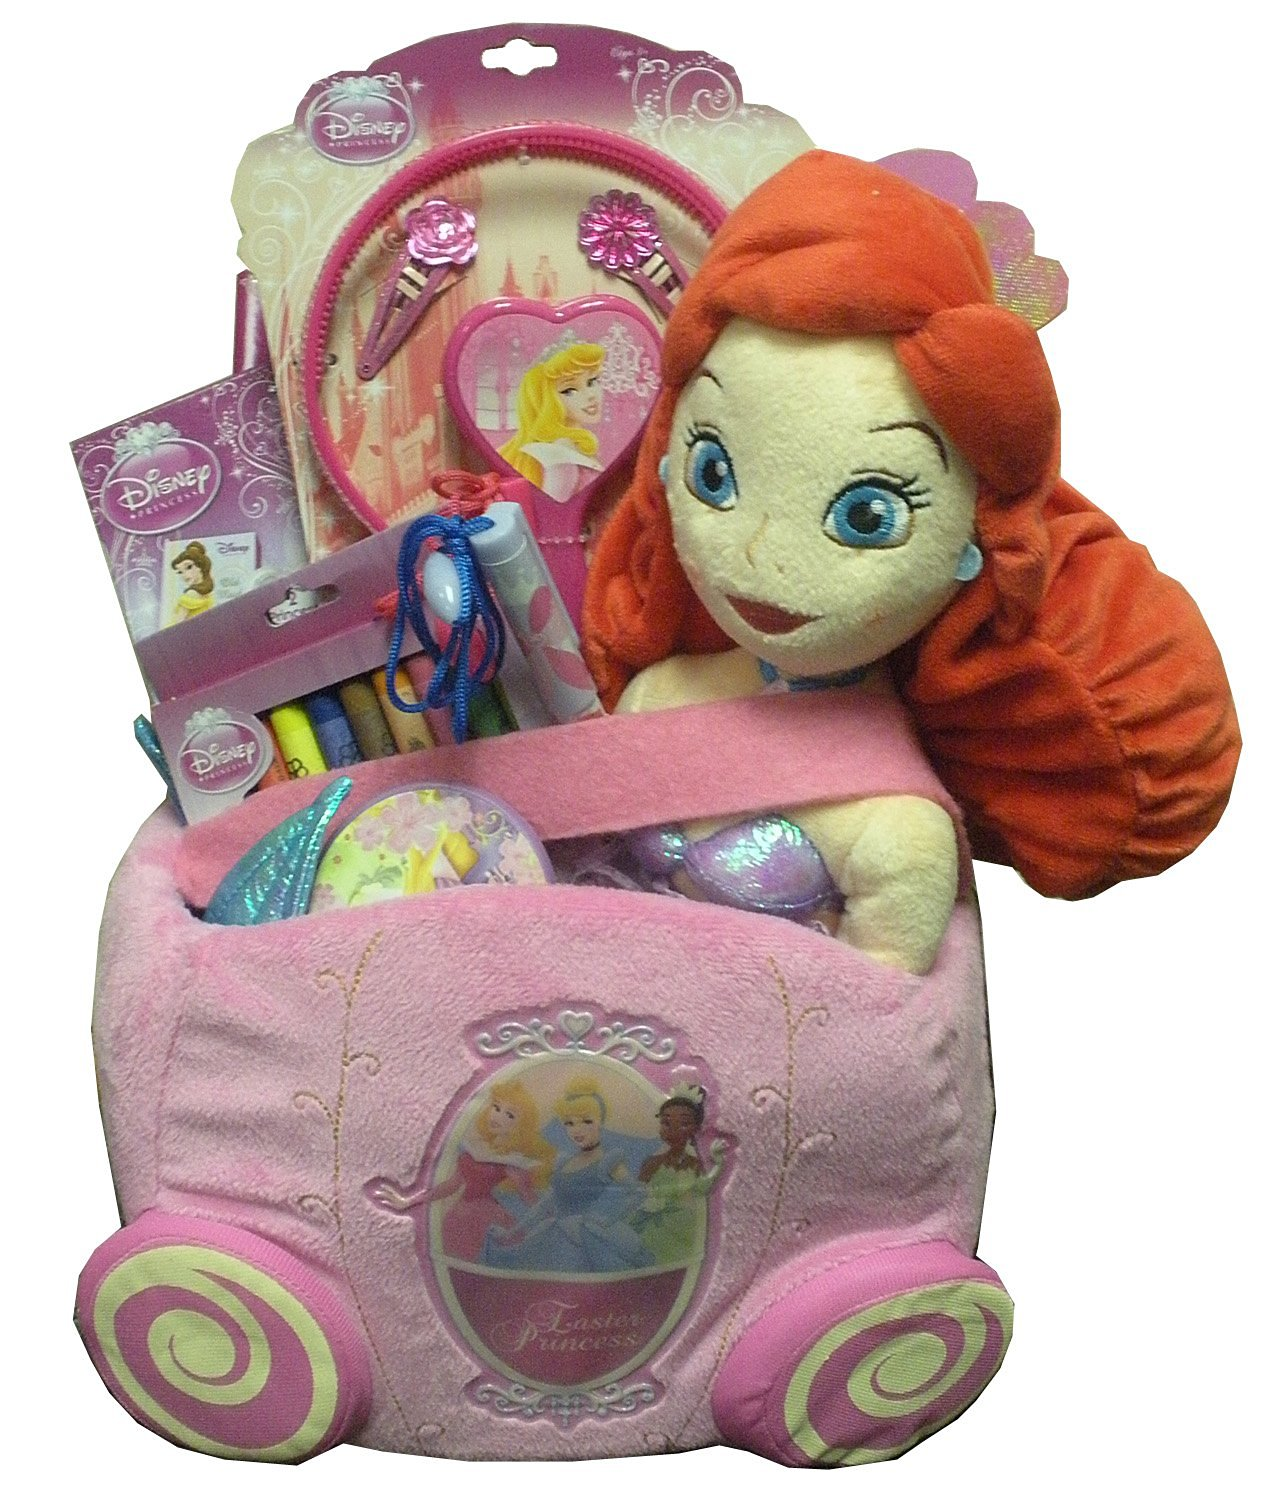 Disney Princess Mega Easter Basket - Perfect for Easter, Christmas, Birthdays...